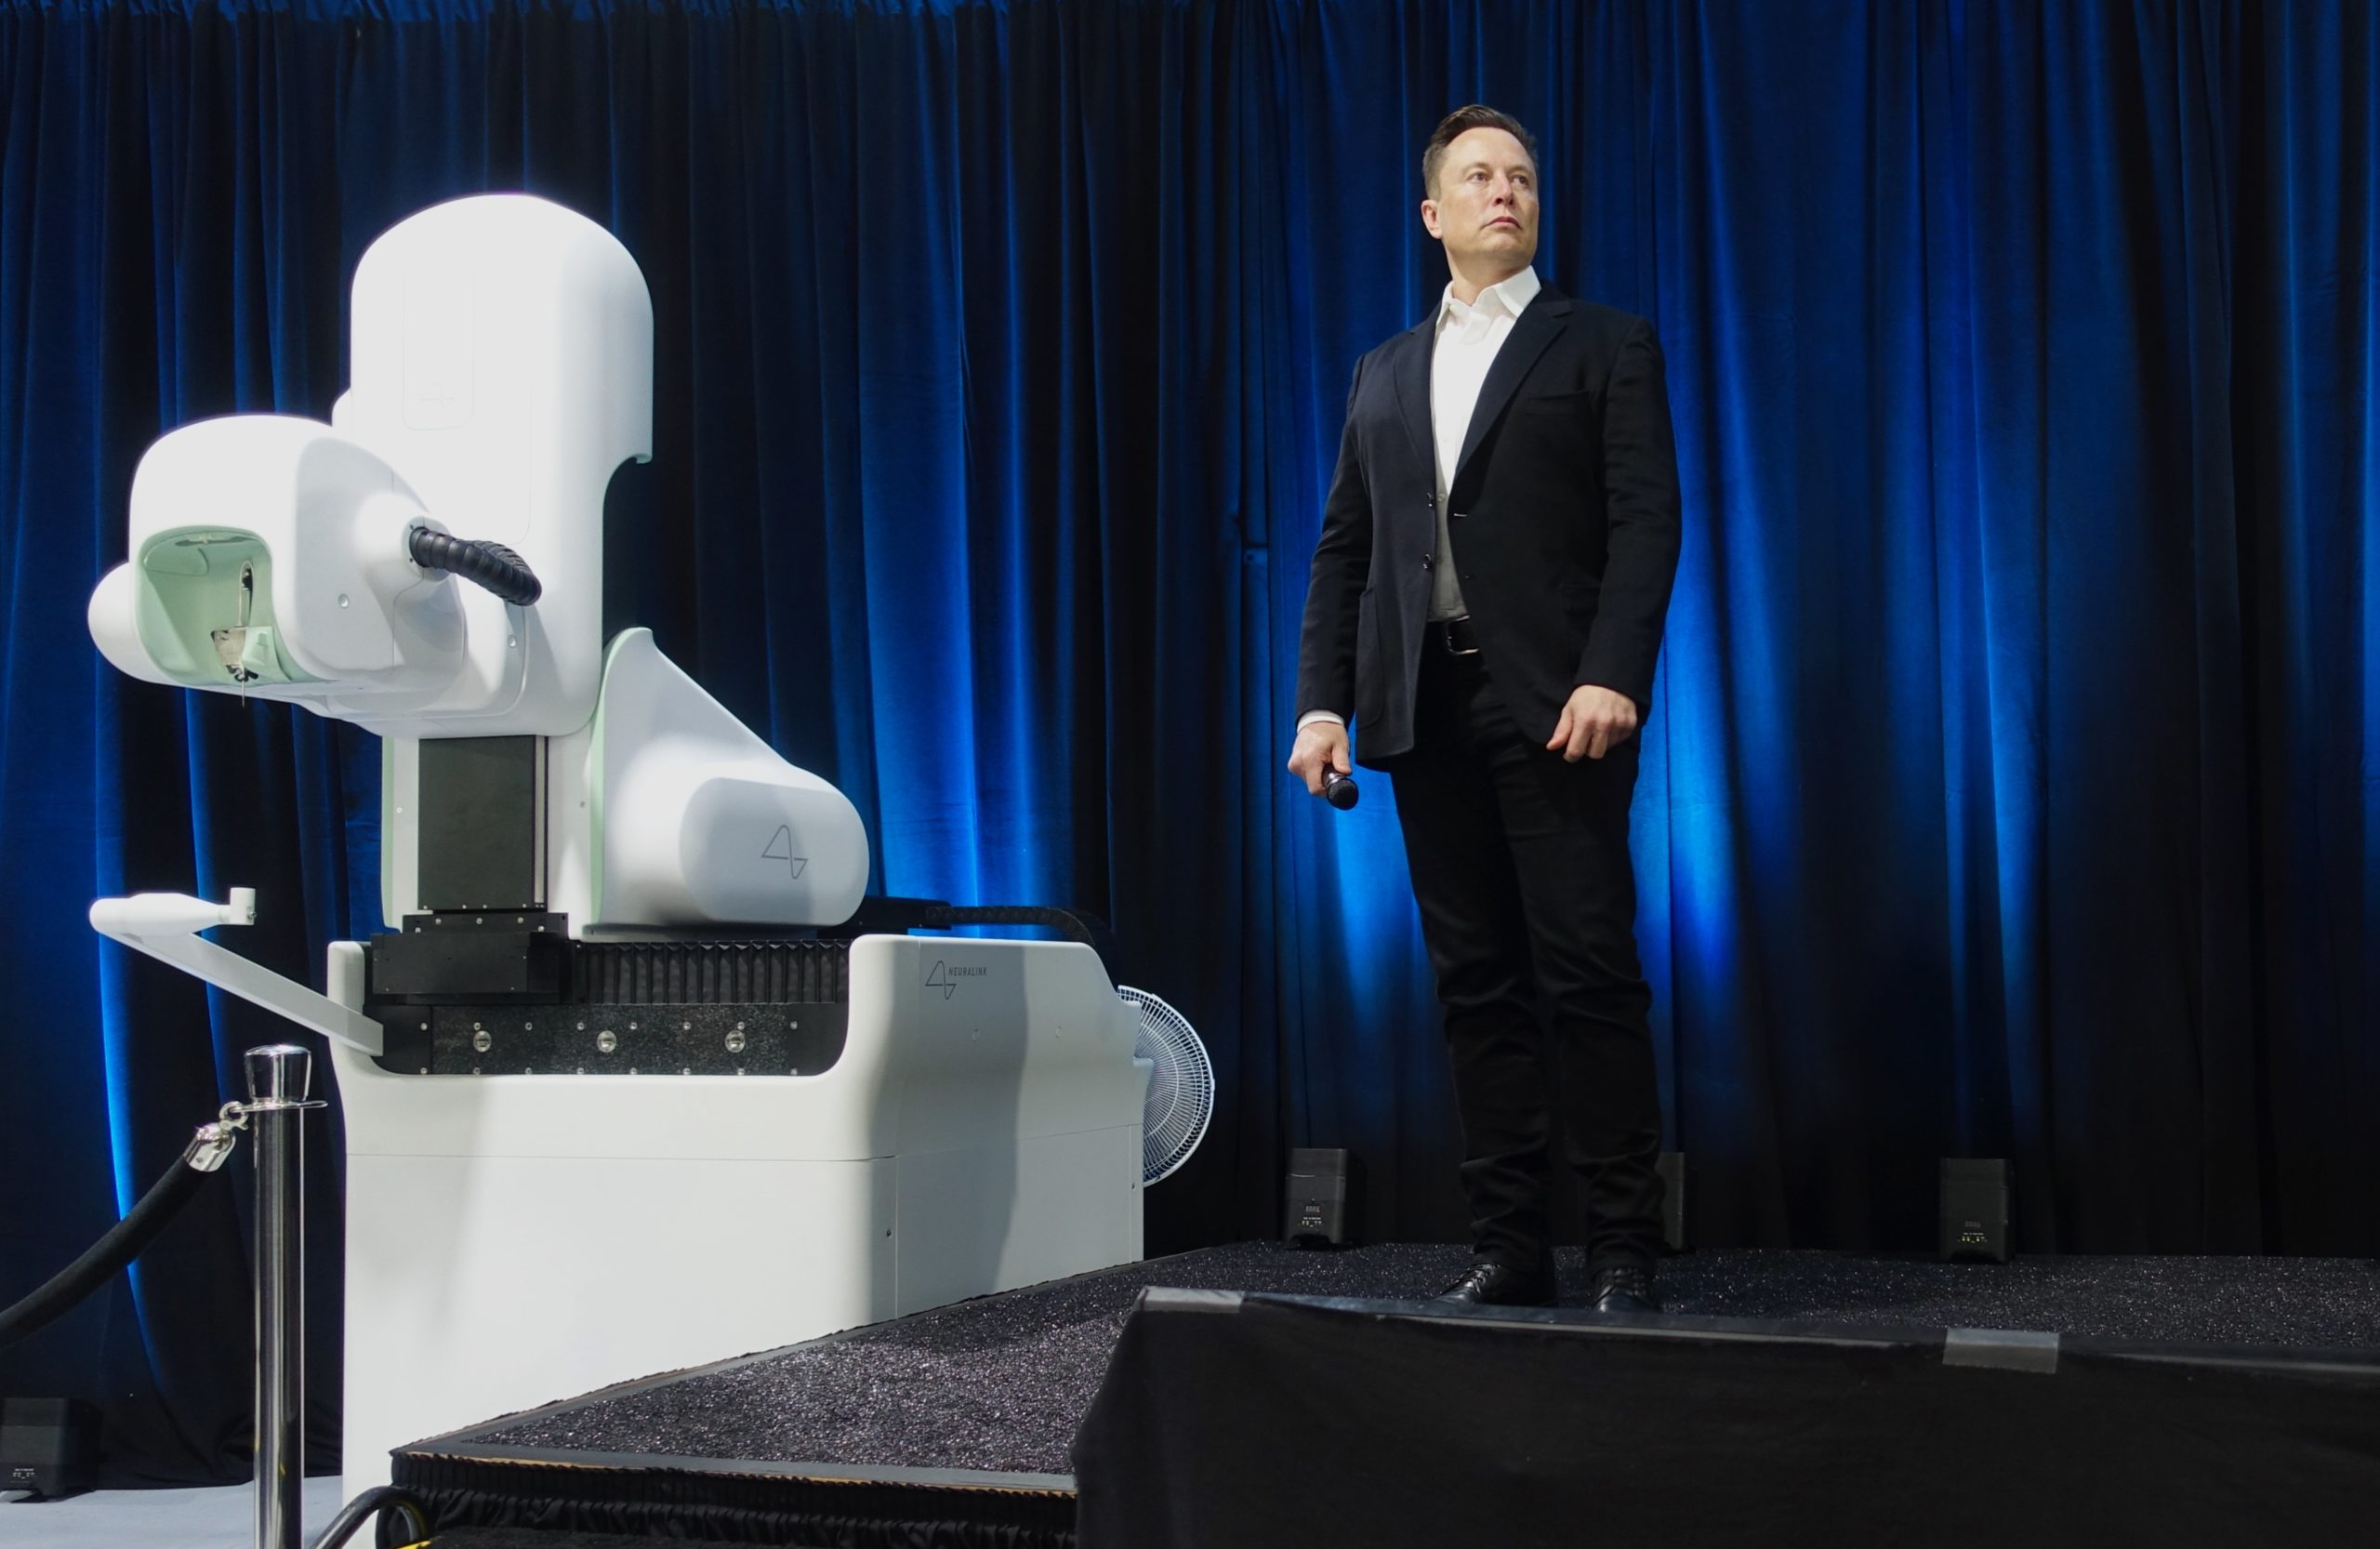 Are Elon Musk's brain chips that big of a deal?